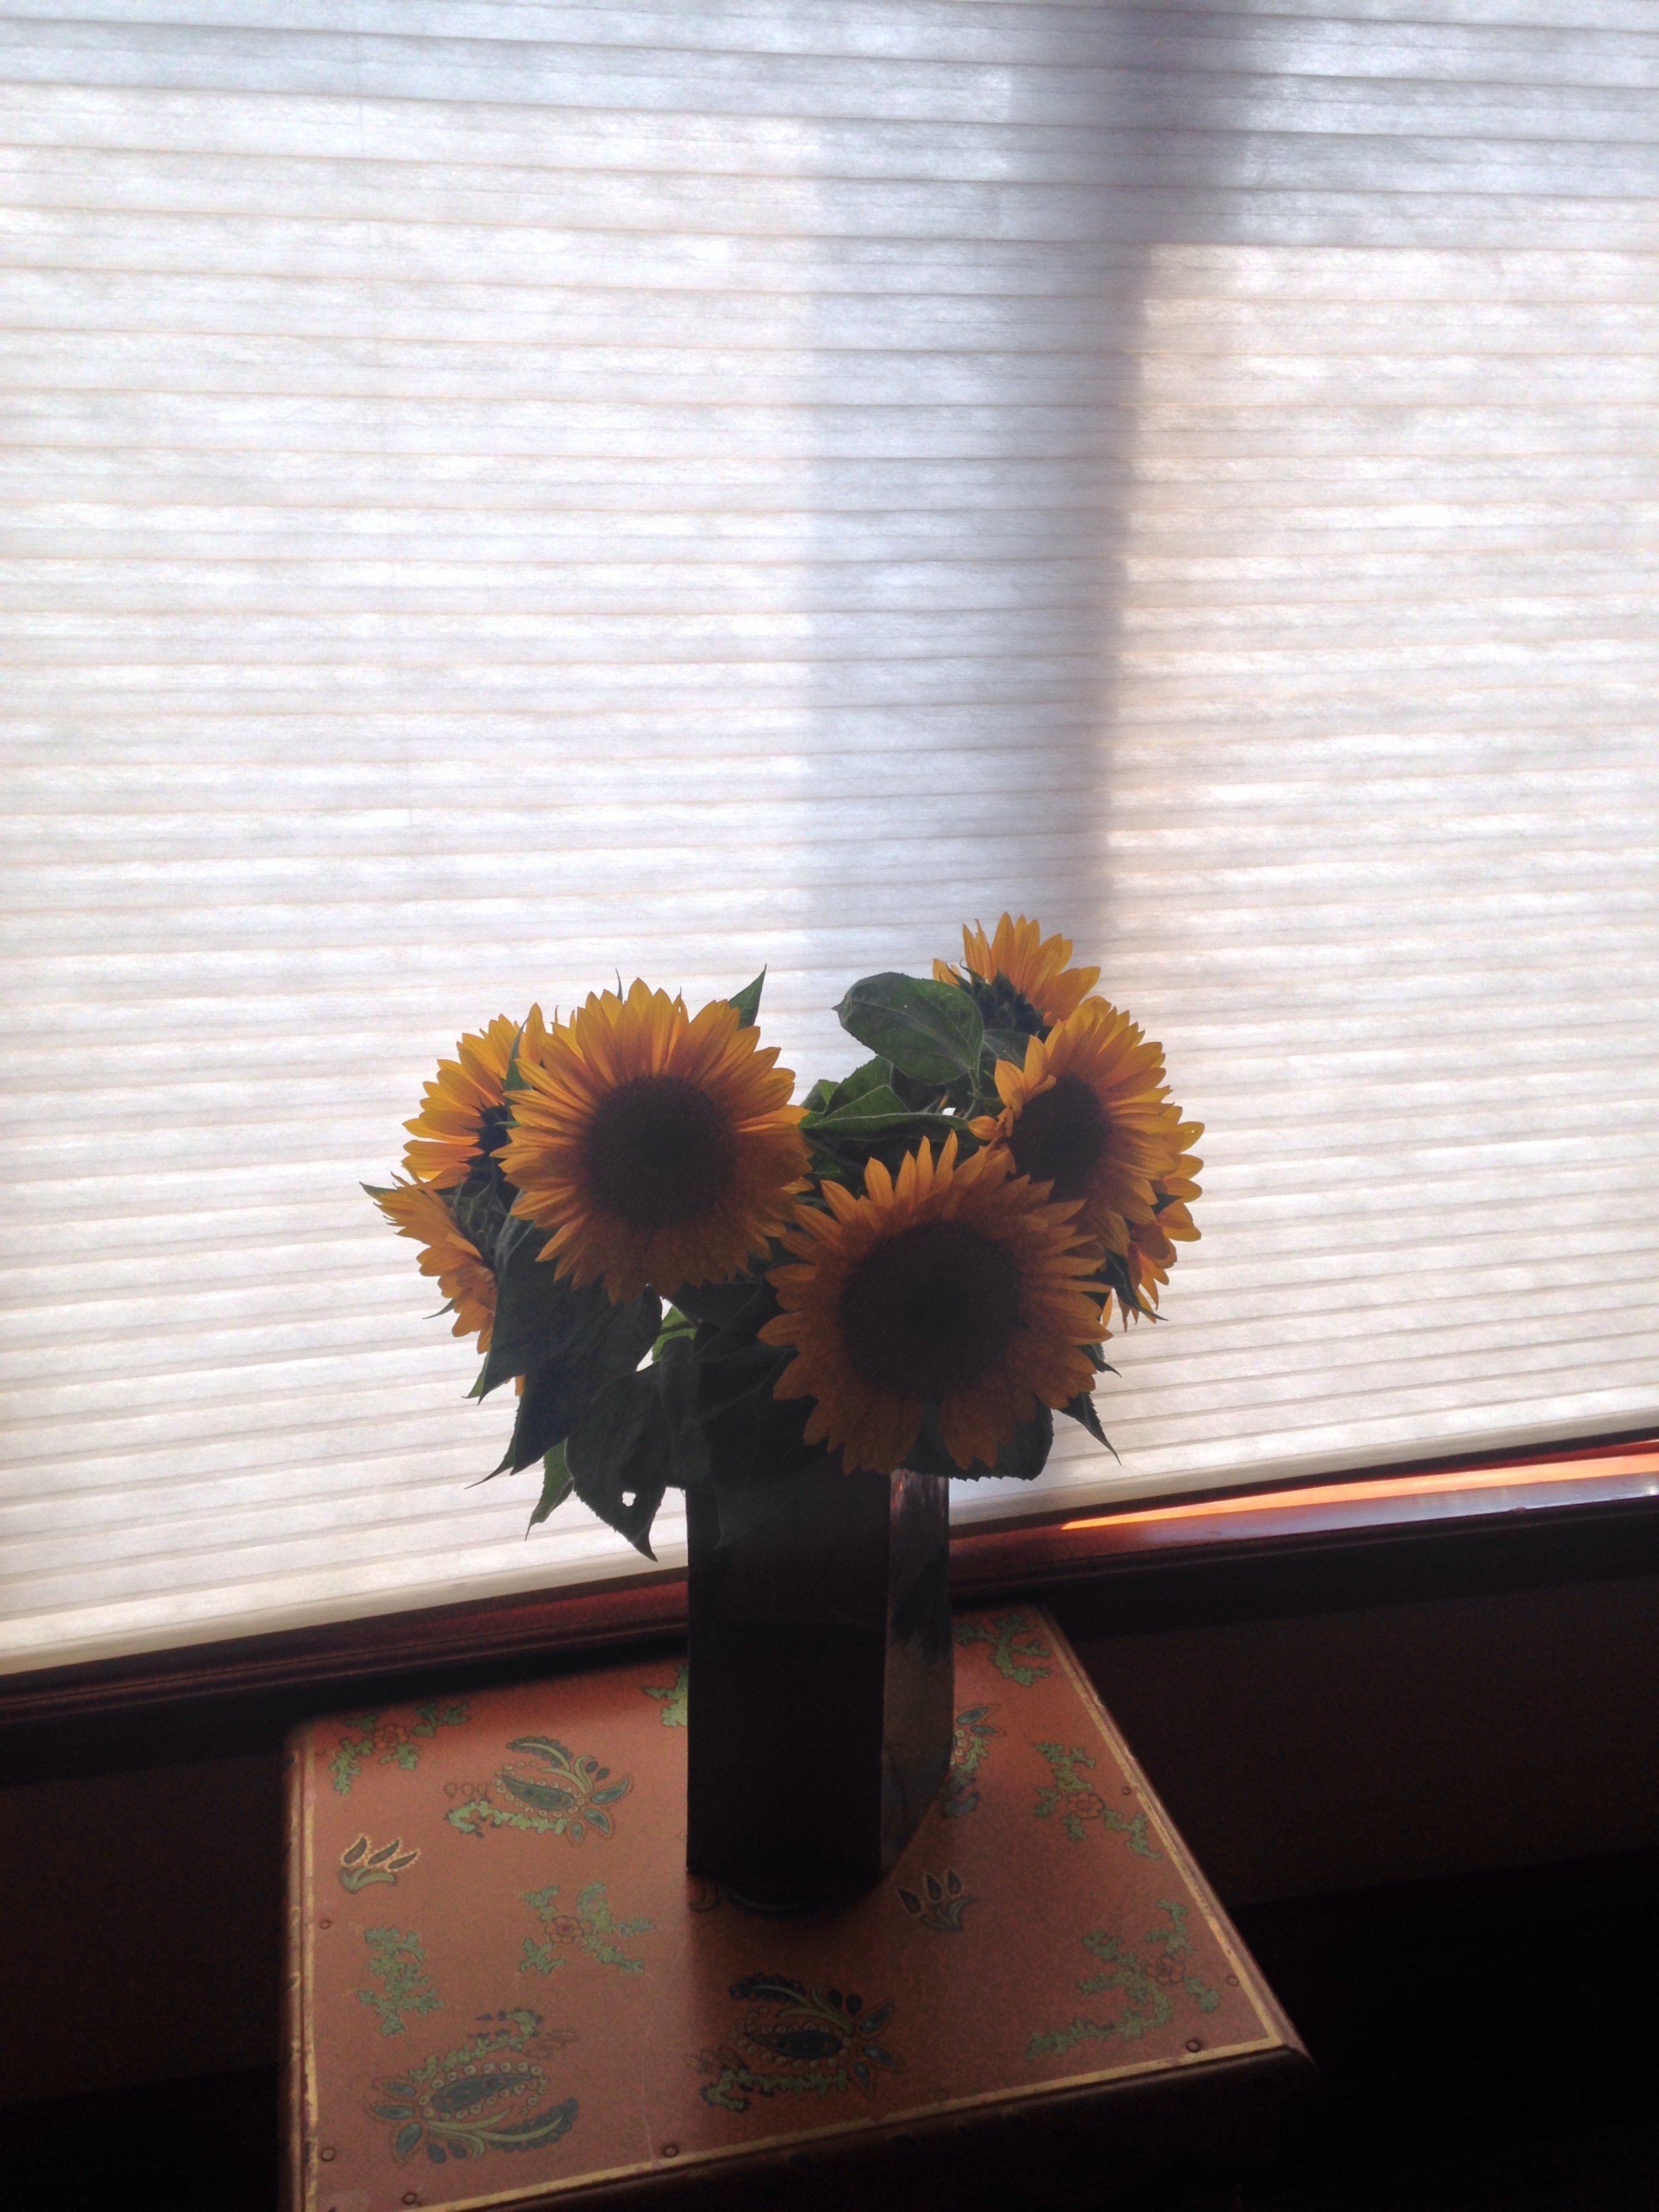 Sunflowers, housewarming gift of Sam and Mary Lou Haskins, San Francisco, September 7, 2017.